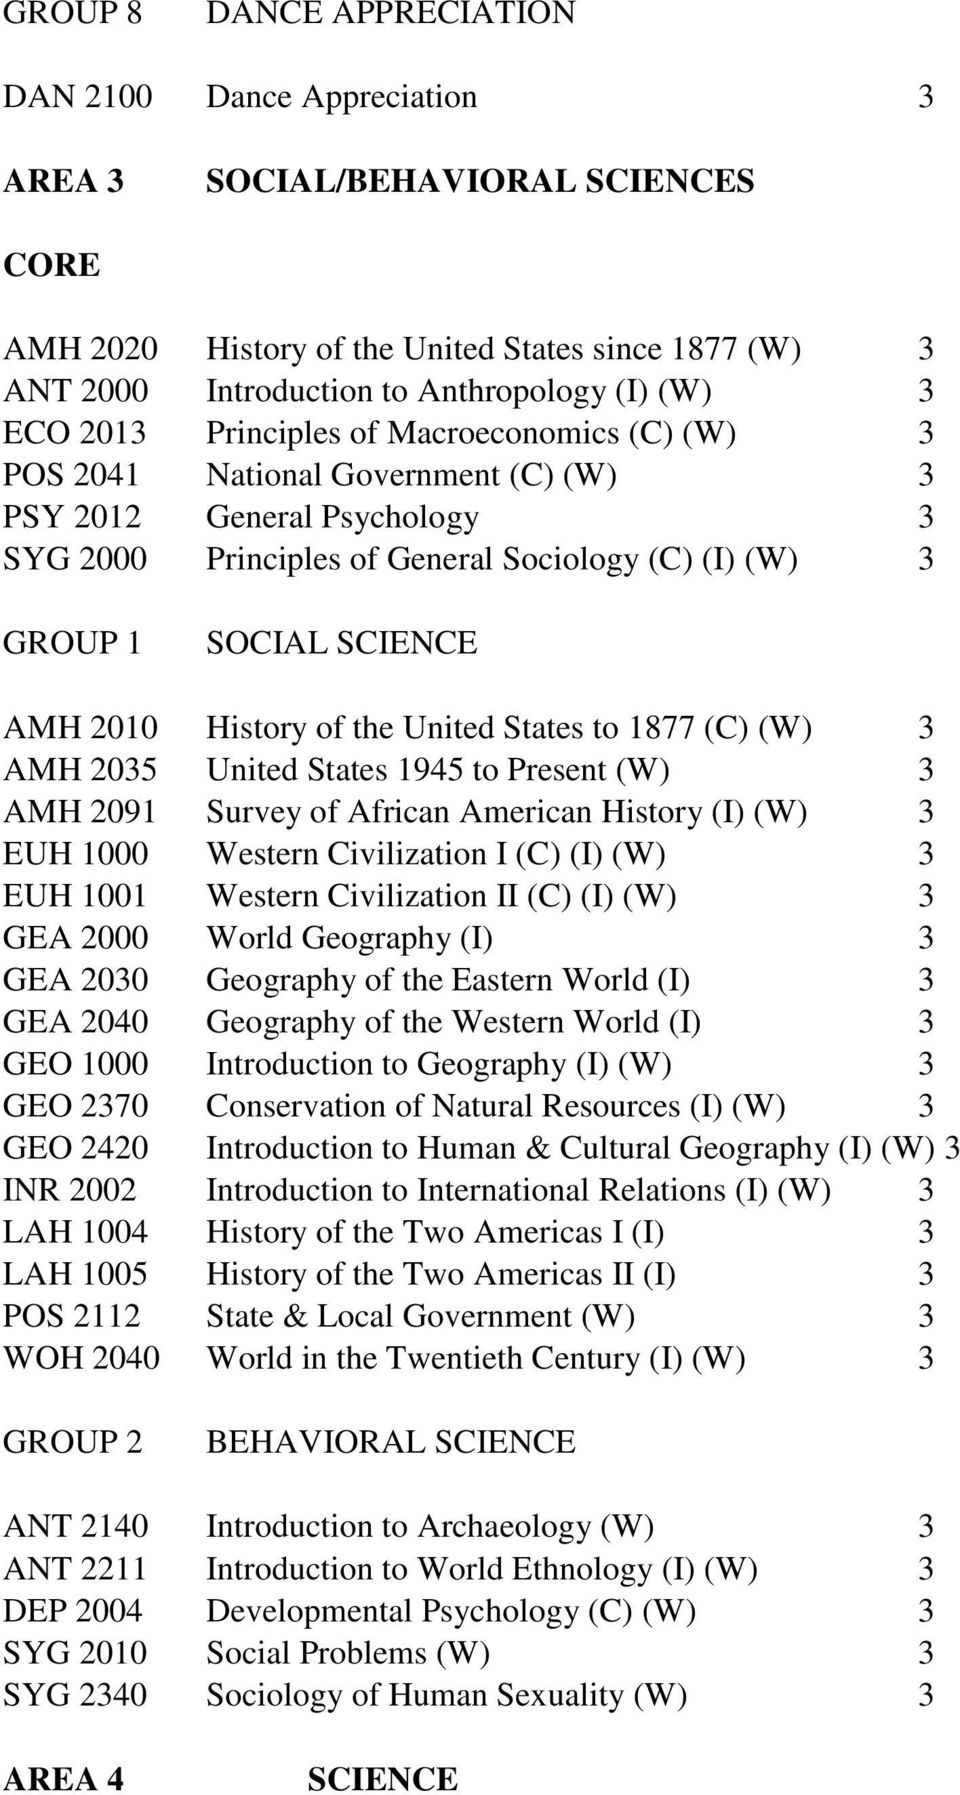 2010 History of the United States to 1877 (C) (W) 3 AMH 2035 United States 1945 to Present (W) 3 AMH 2091 Survey of African American History (I) (W) 3 EUH 1000 Western Civilization I (C) (I) (W) 3